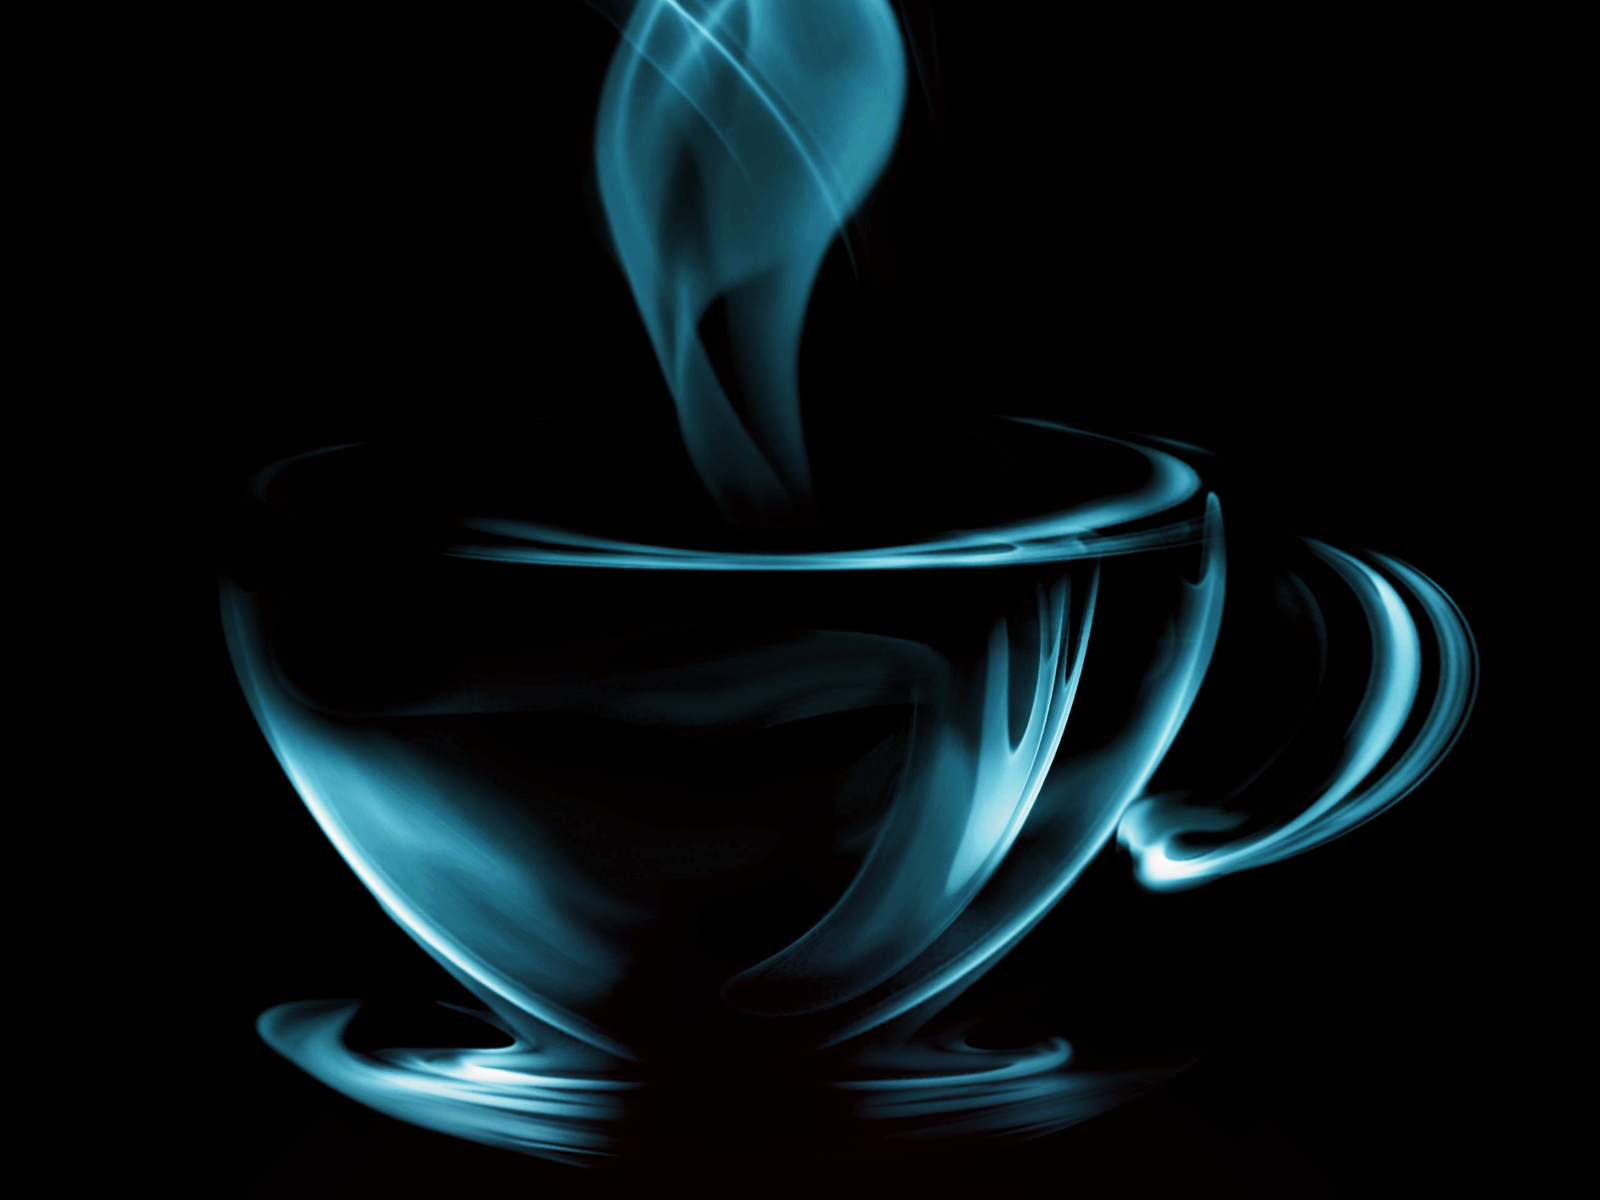 File Name: #771907 HD Coffee Wallpapers | Download Free - 771907